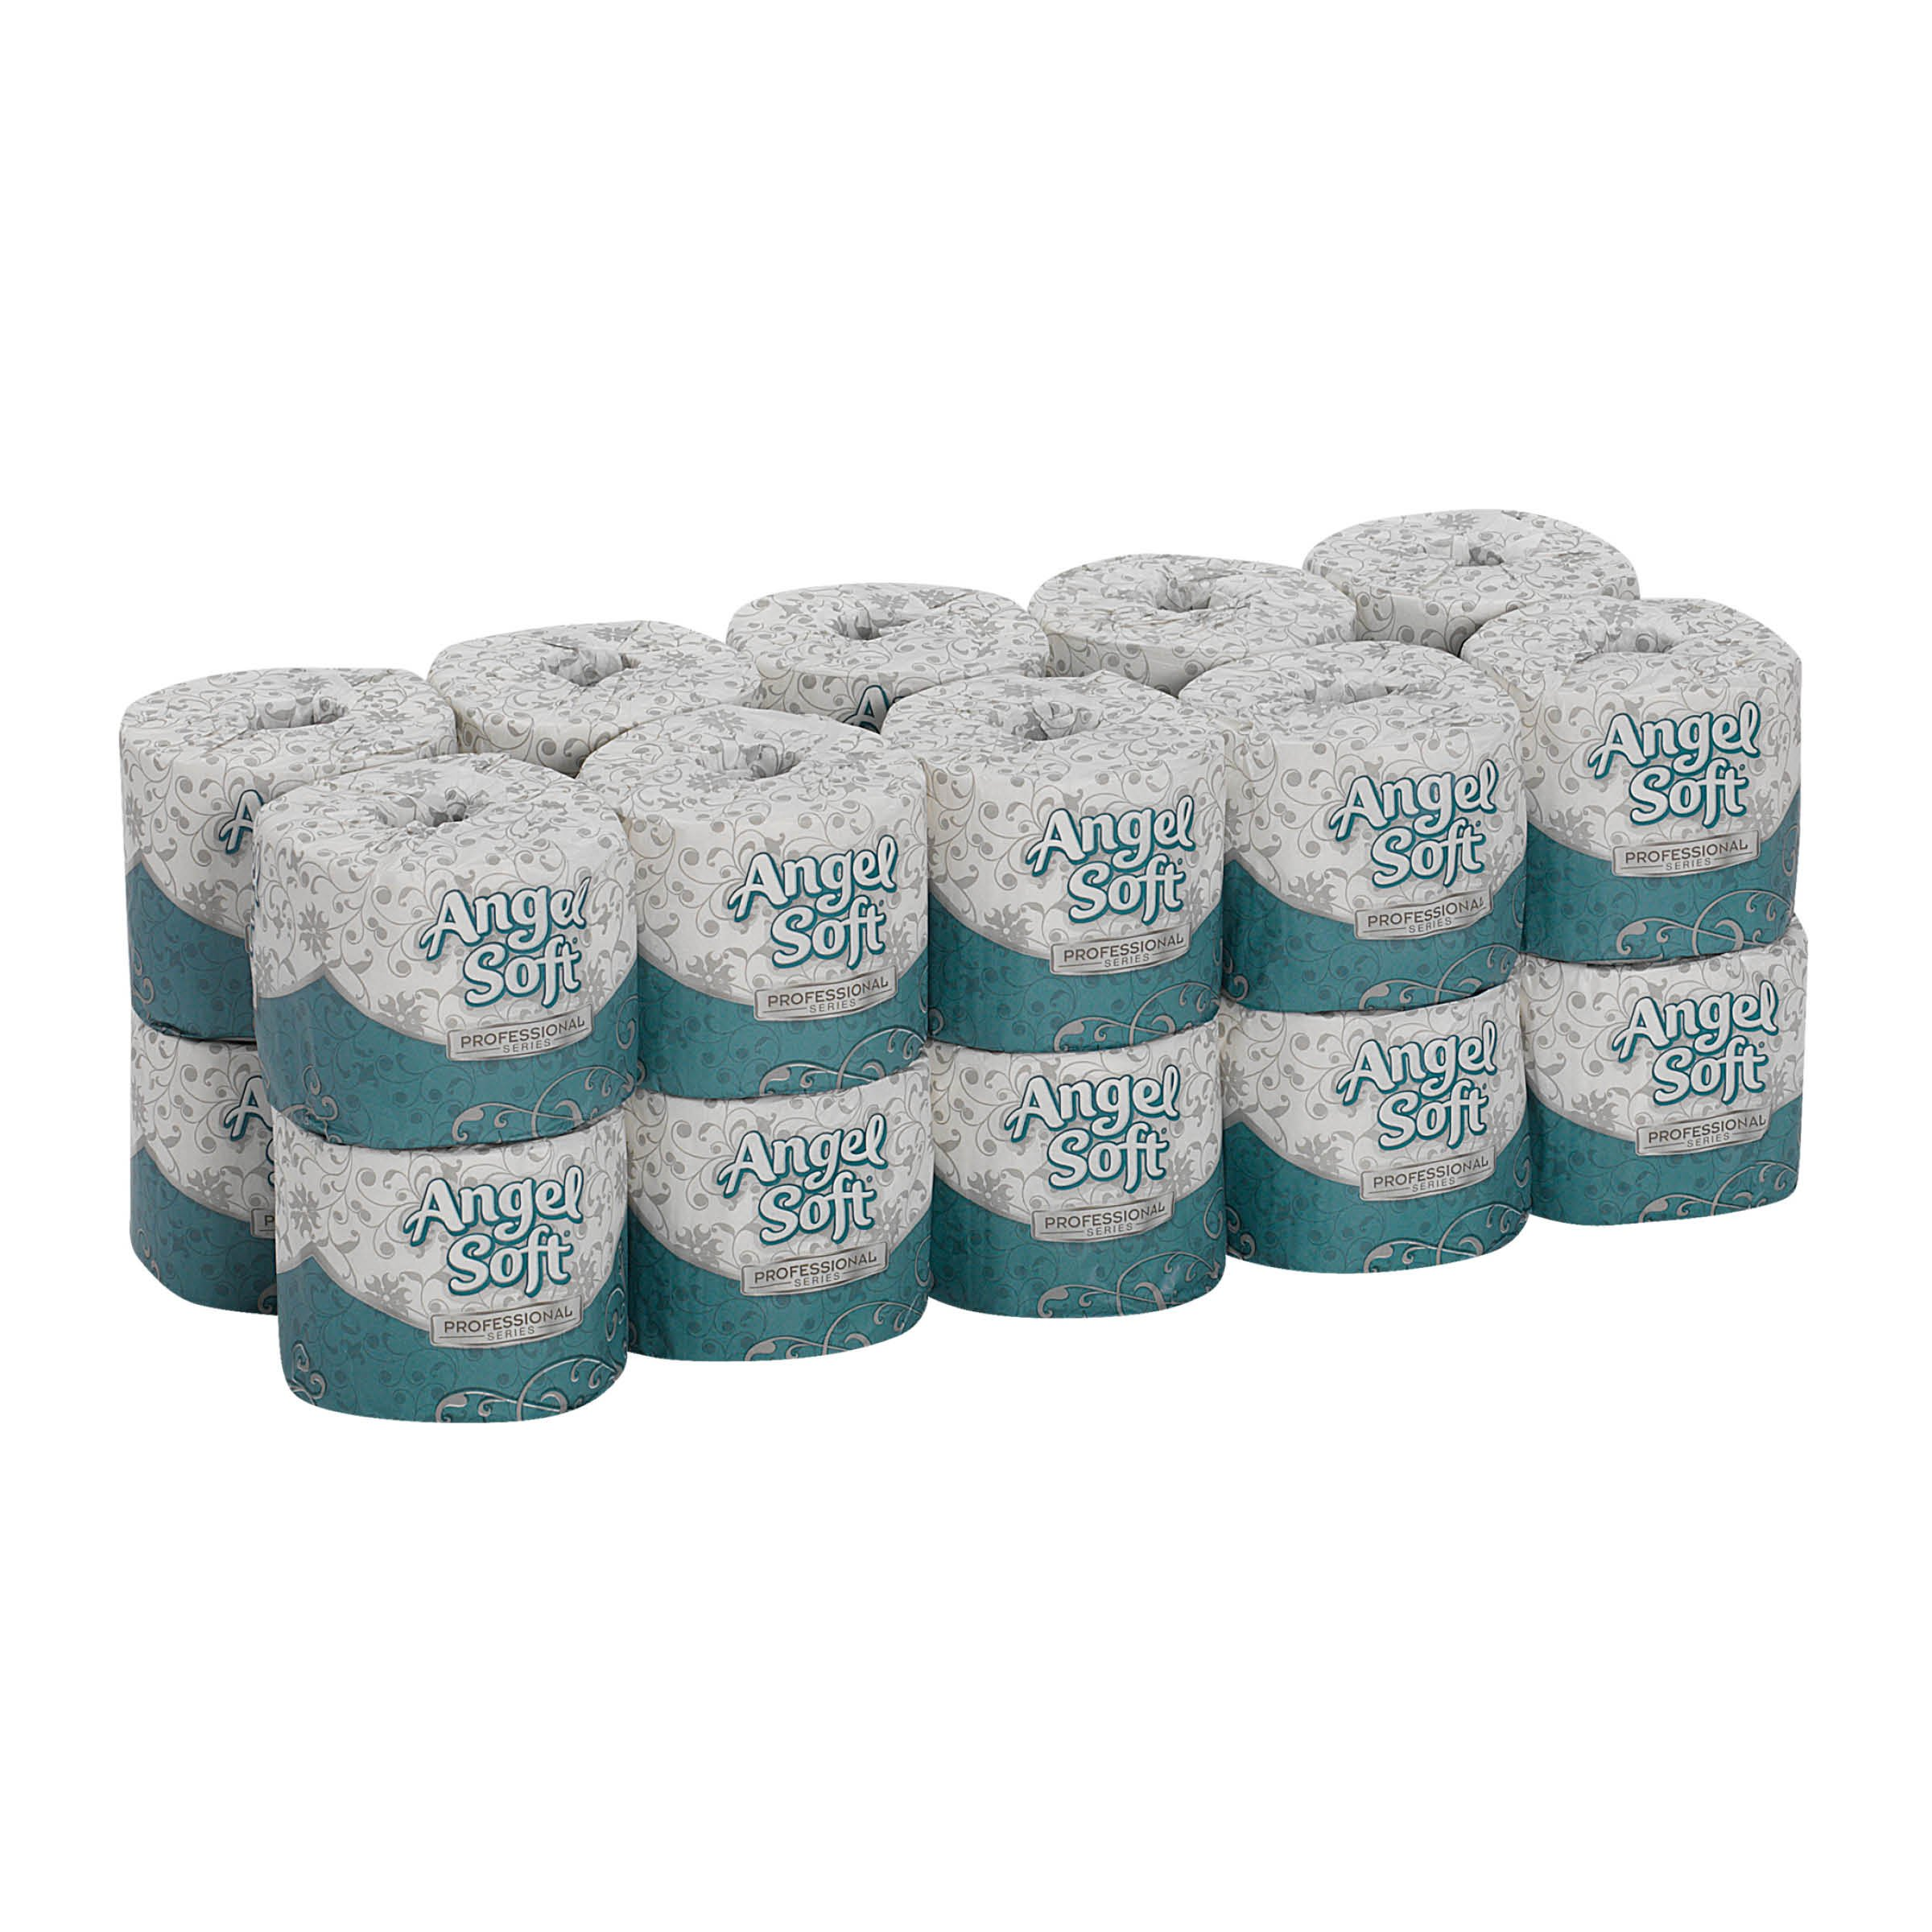 Angel Soft Professional Series Premium 2-Ply Embossed Toilet Paper by GP PRO, 16620, 450 Sheets Per Roll, 20 Rolls Per Convenience Case